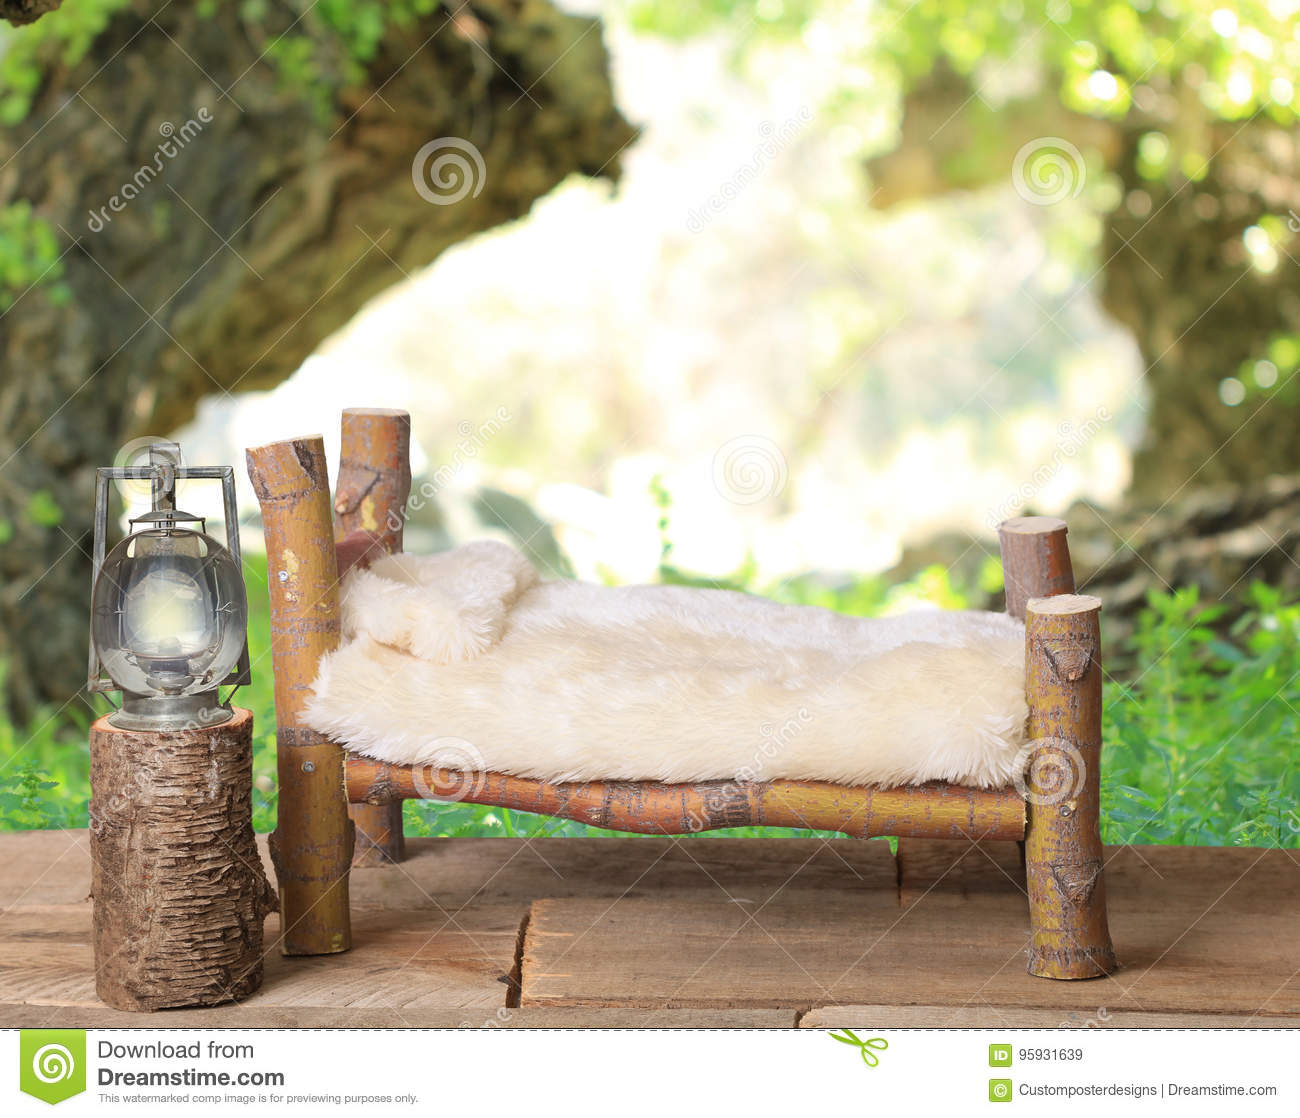 Download A Newborn Bed Studio Digital Prop Made From Japanese Maple Tree Branches With A Dandelion Green Meadow Nature Background. Stock Image - Image of handmade, branches: 95931639